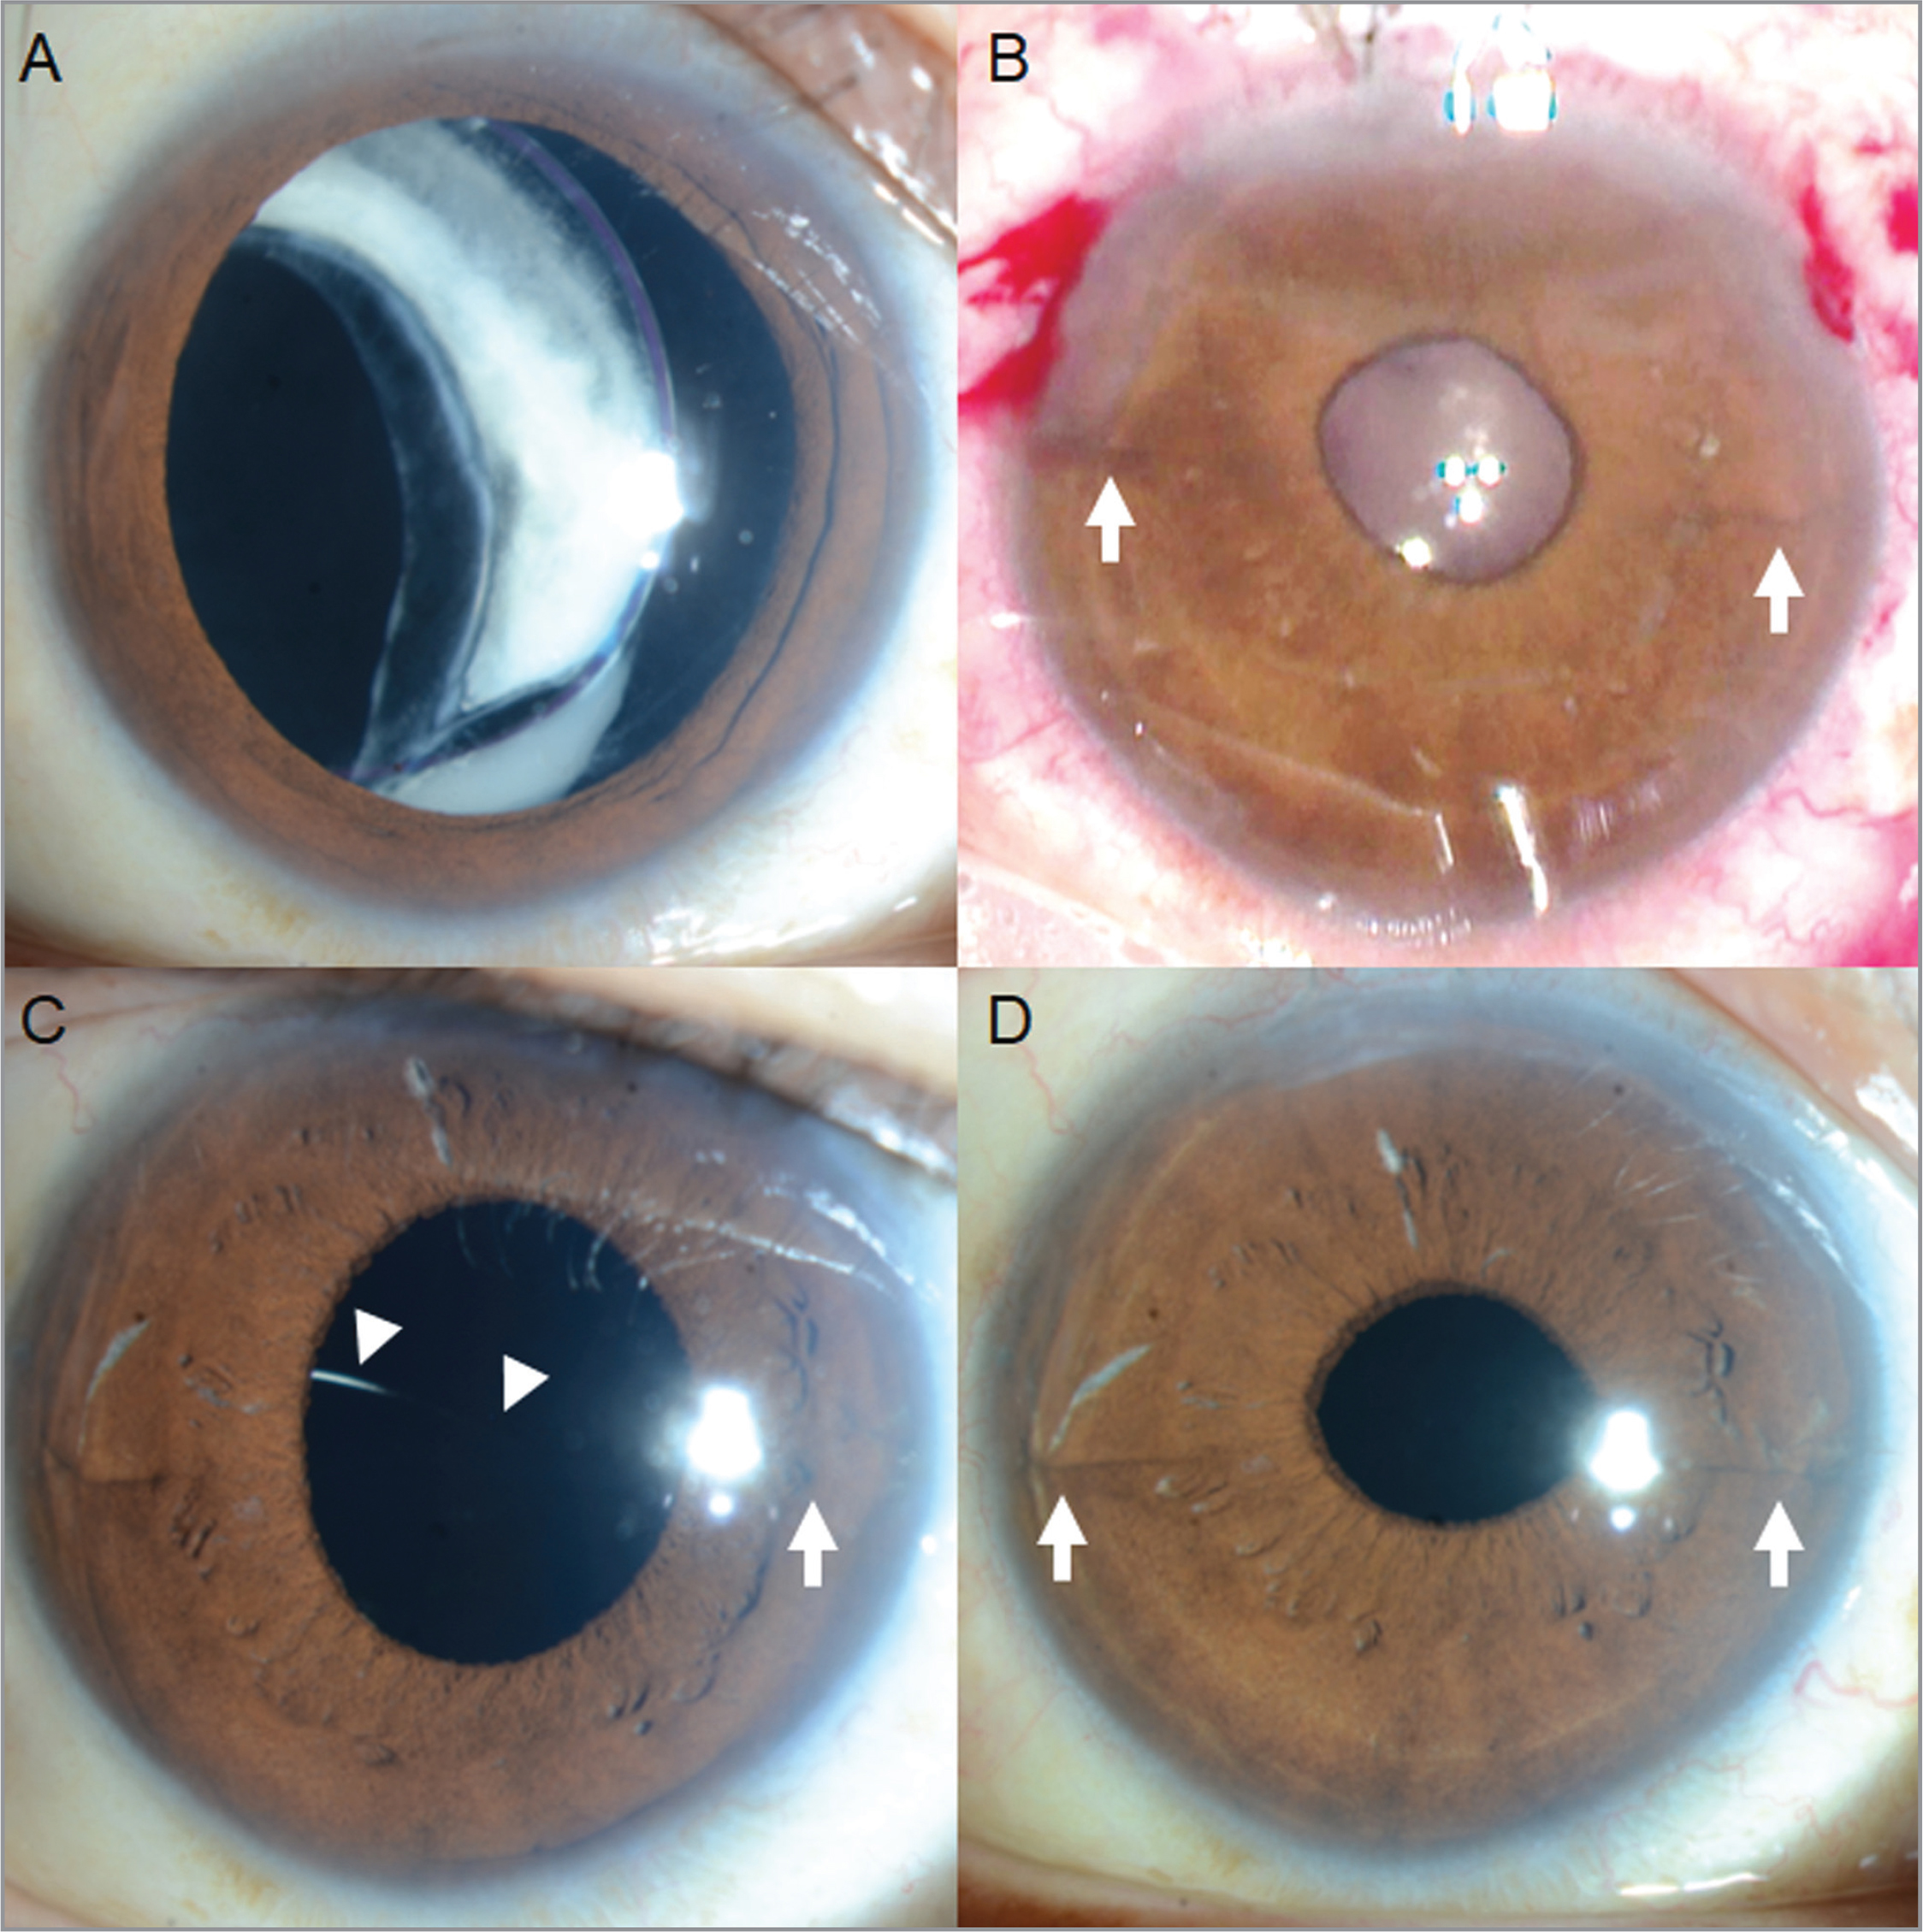 Case 6. (A) The right eye of 49-year-old man shows intraocular lens (IOL) with dislocation of the capsular bag. (B) Surgical photograph shows an anterior segment after retropupillary implantation of the iris-claw IOL (arrows). (C) Ninety-six days after first surgery, spontaneous IOL dislocation into the vitreous body (arrowheads) with disenclavated nasal haptic is observed (arrow). (D) After reenclavation, the iris tissue shows enclavation into the haptics at 3-o'clock and 9-o'clock position (arrows).